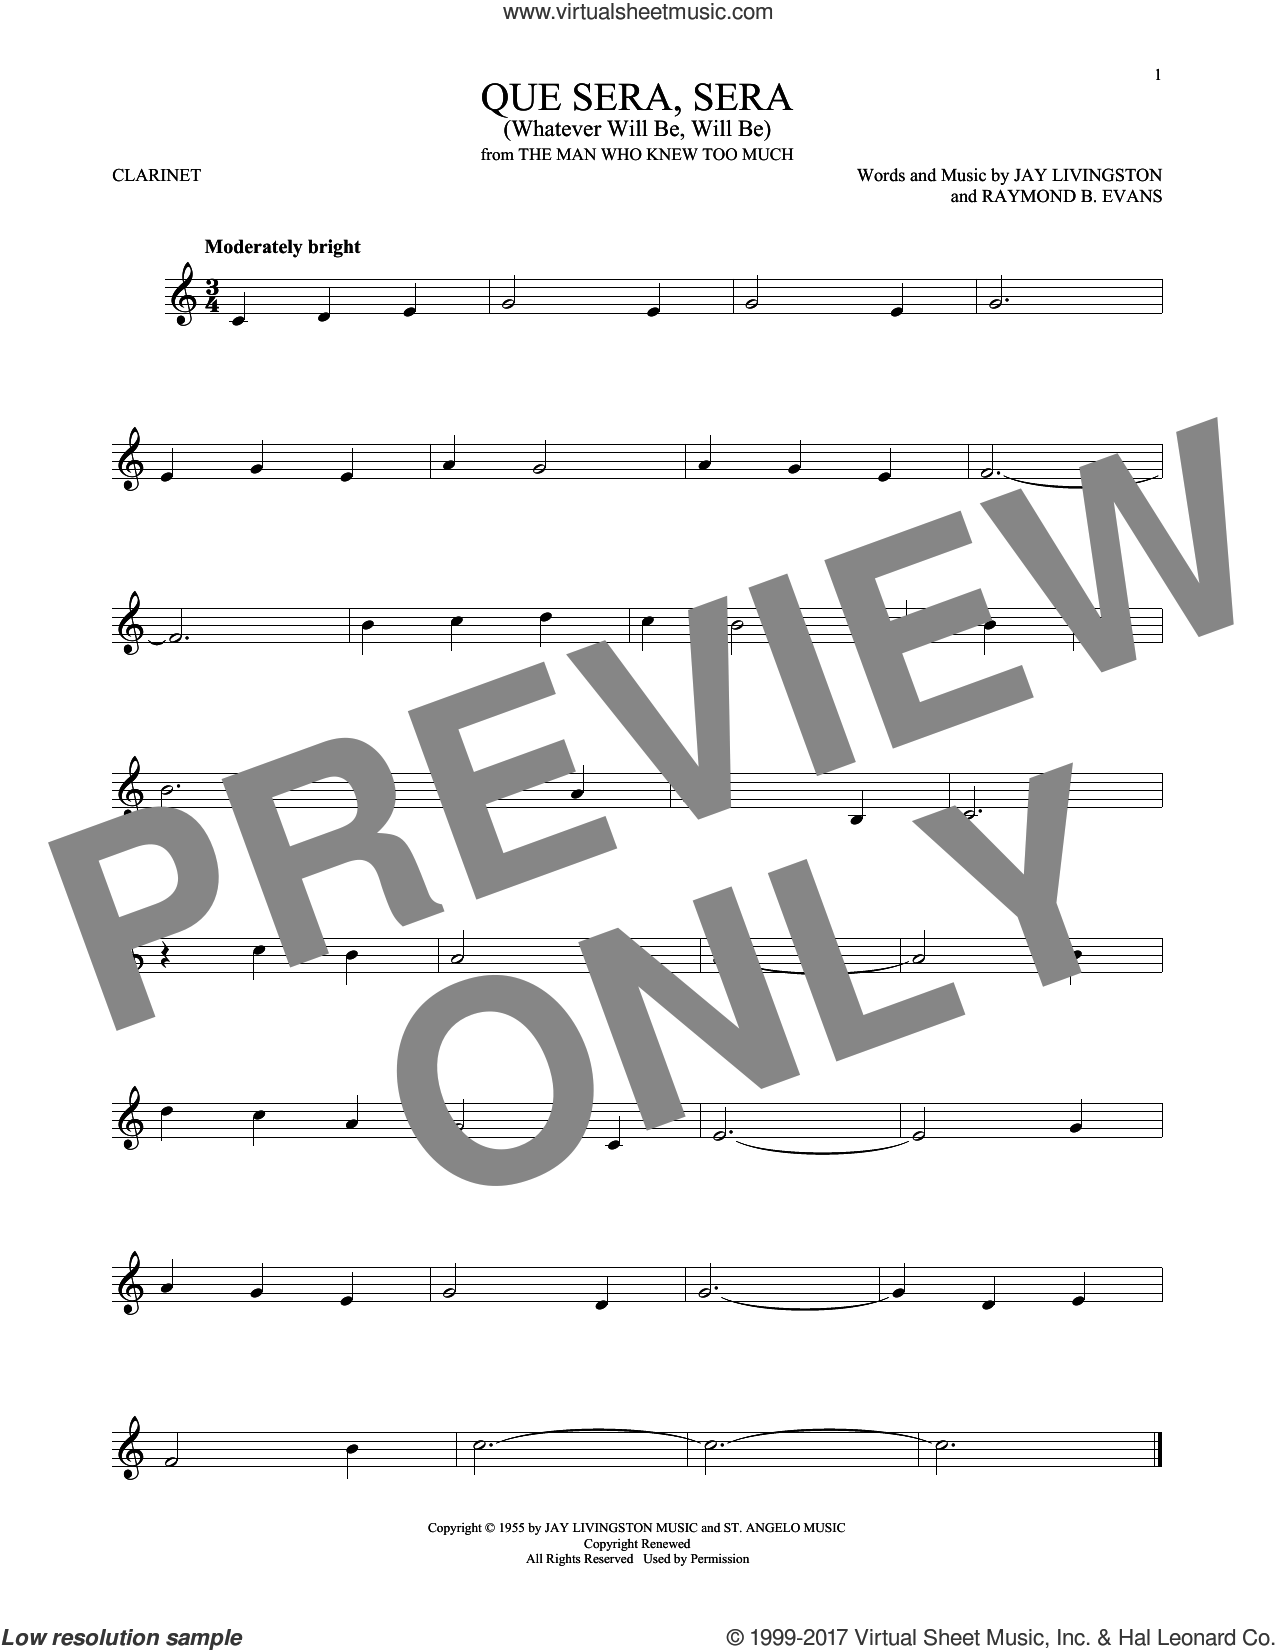 Que Sera, Sera (Whatever Will Be, Will Be) sheet music for clarinet solo by Doris Day, Jay Livingston and Raymond B. Evans, intermediate skill level